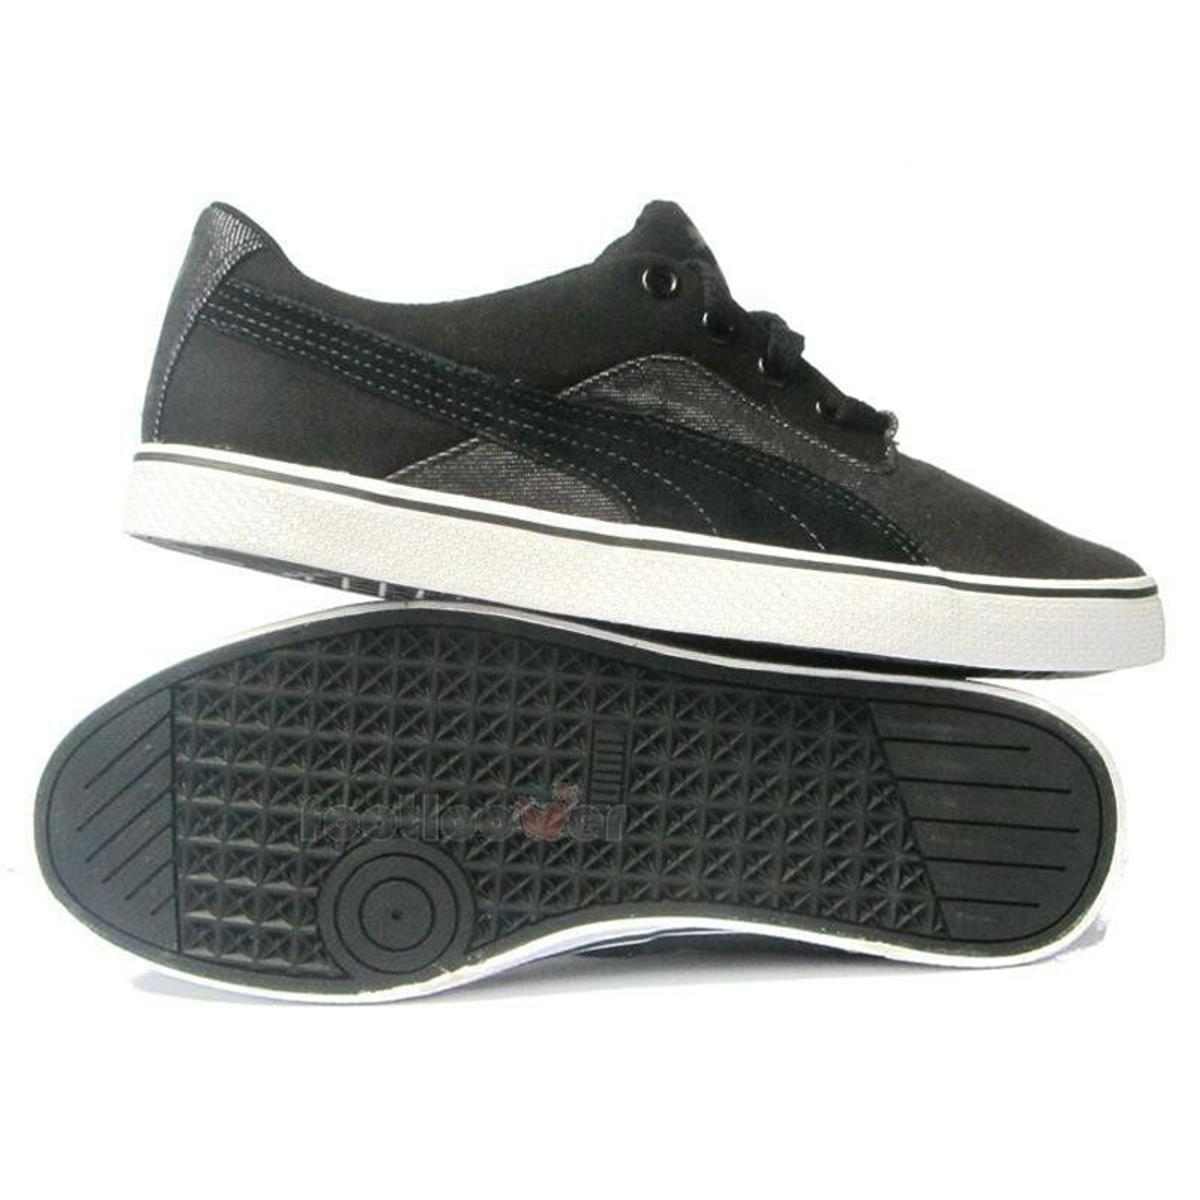 depositar he equivocado En otras palabras  Mens puma trainers size 9.5 brand new in RM5 Romford for £26.00 ...